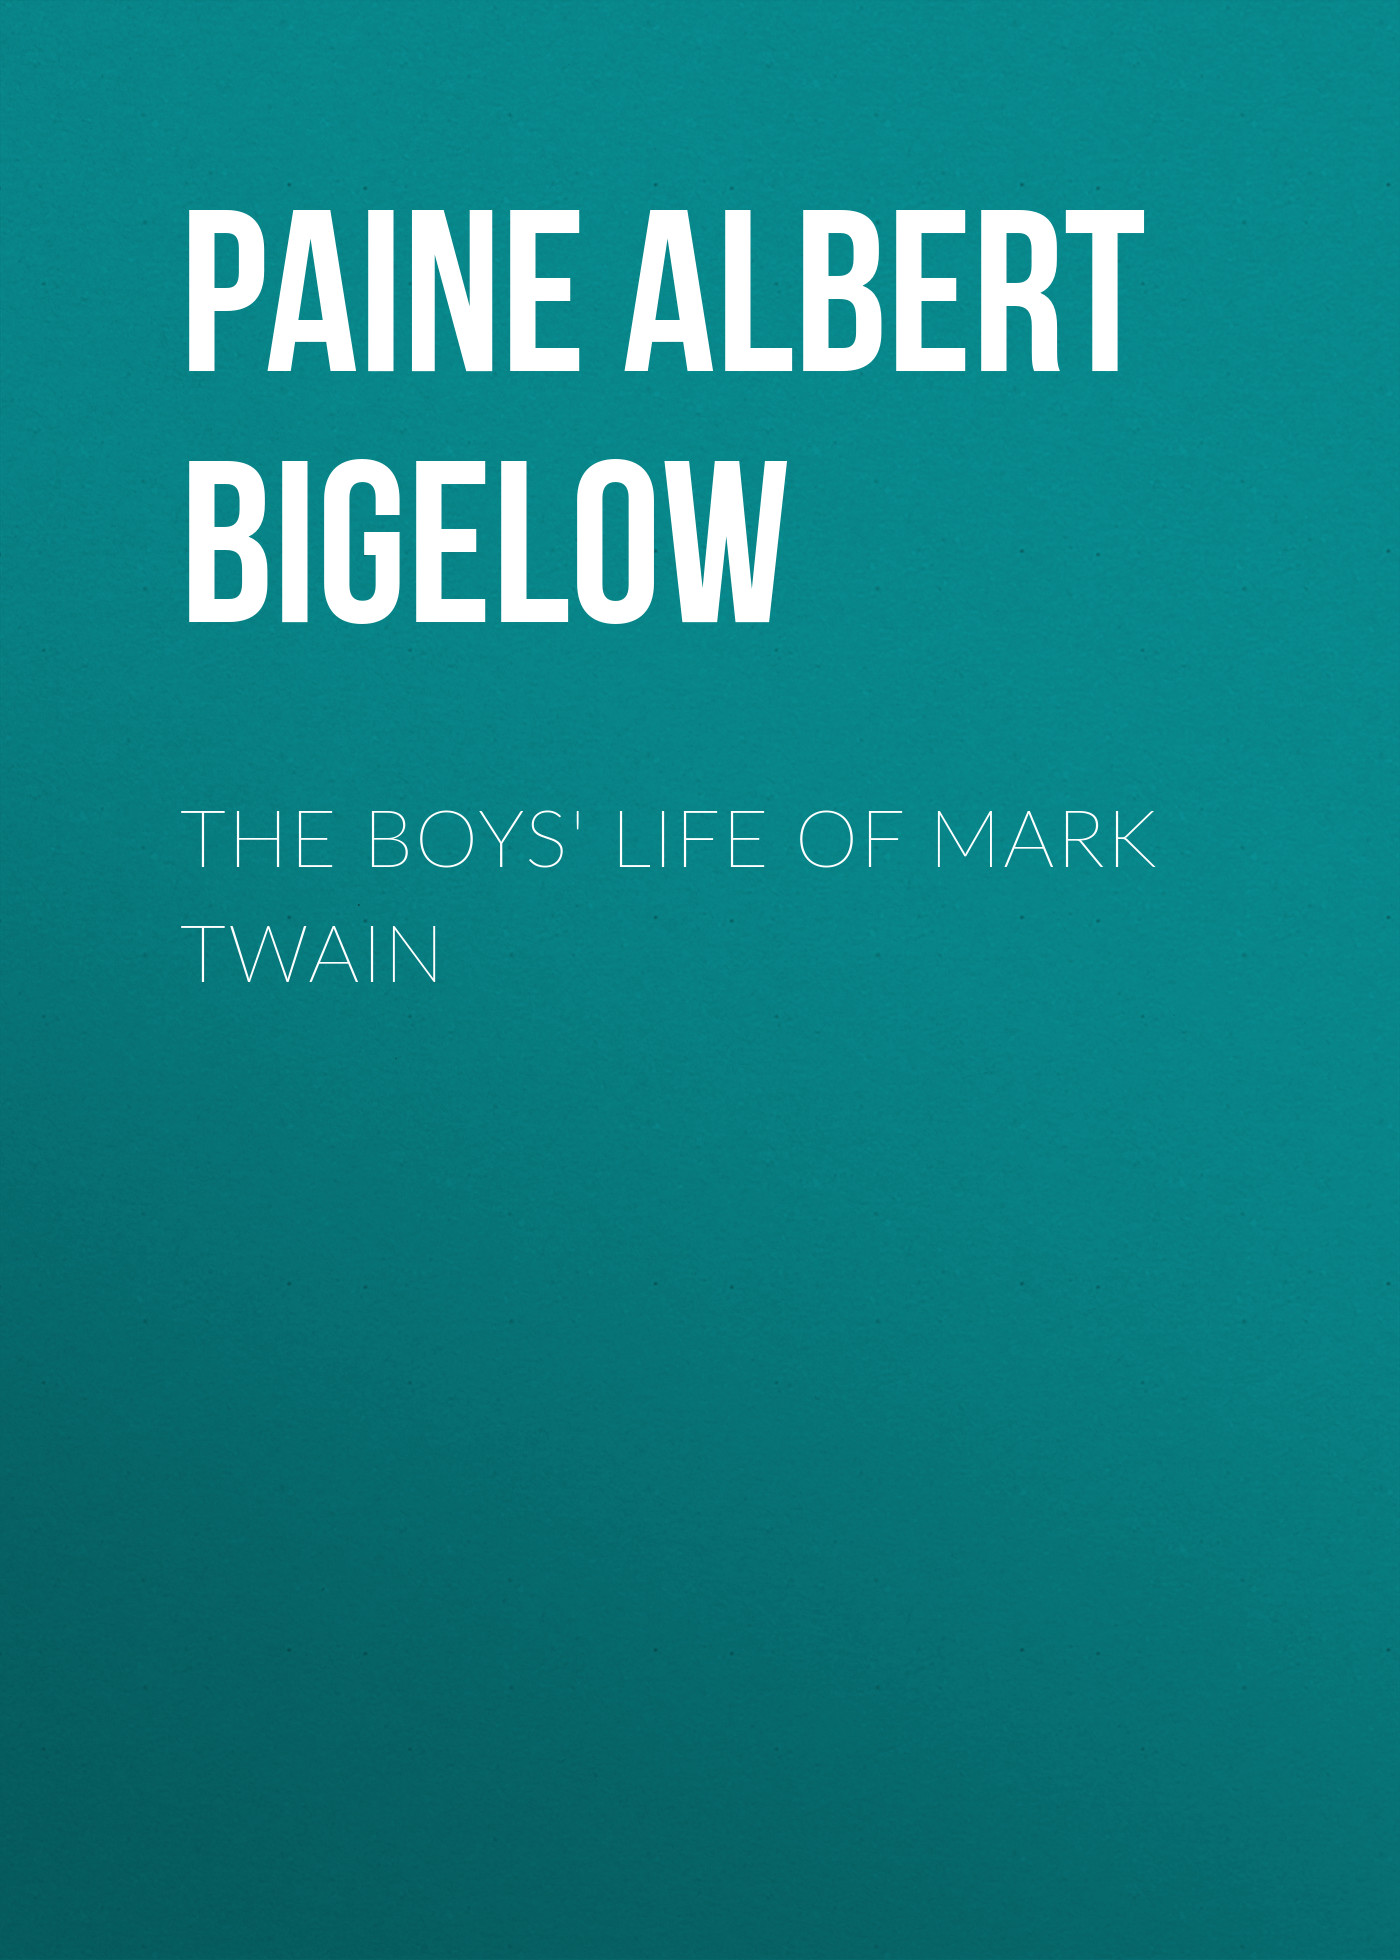 Фото - Paine Albert Bigelow The Boys' Life of Mark Twain paine albert bigelow mark twain a biography volume ii part 1 1886 1900